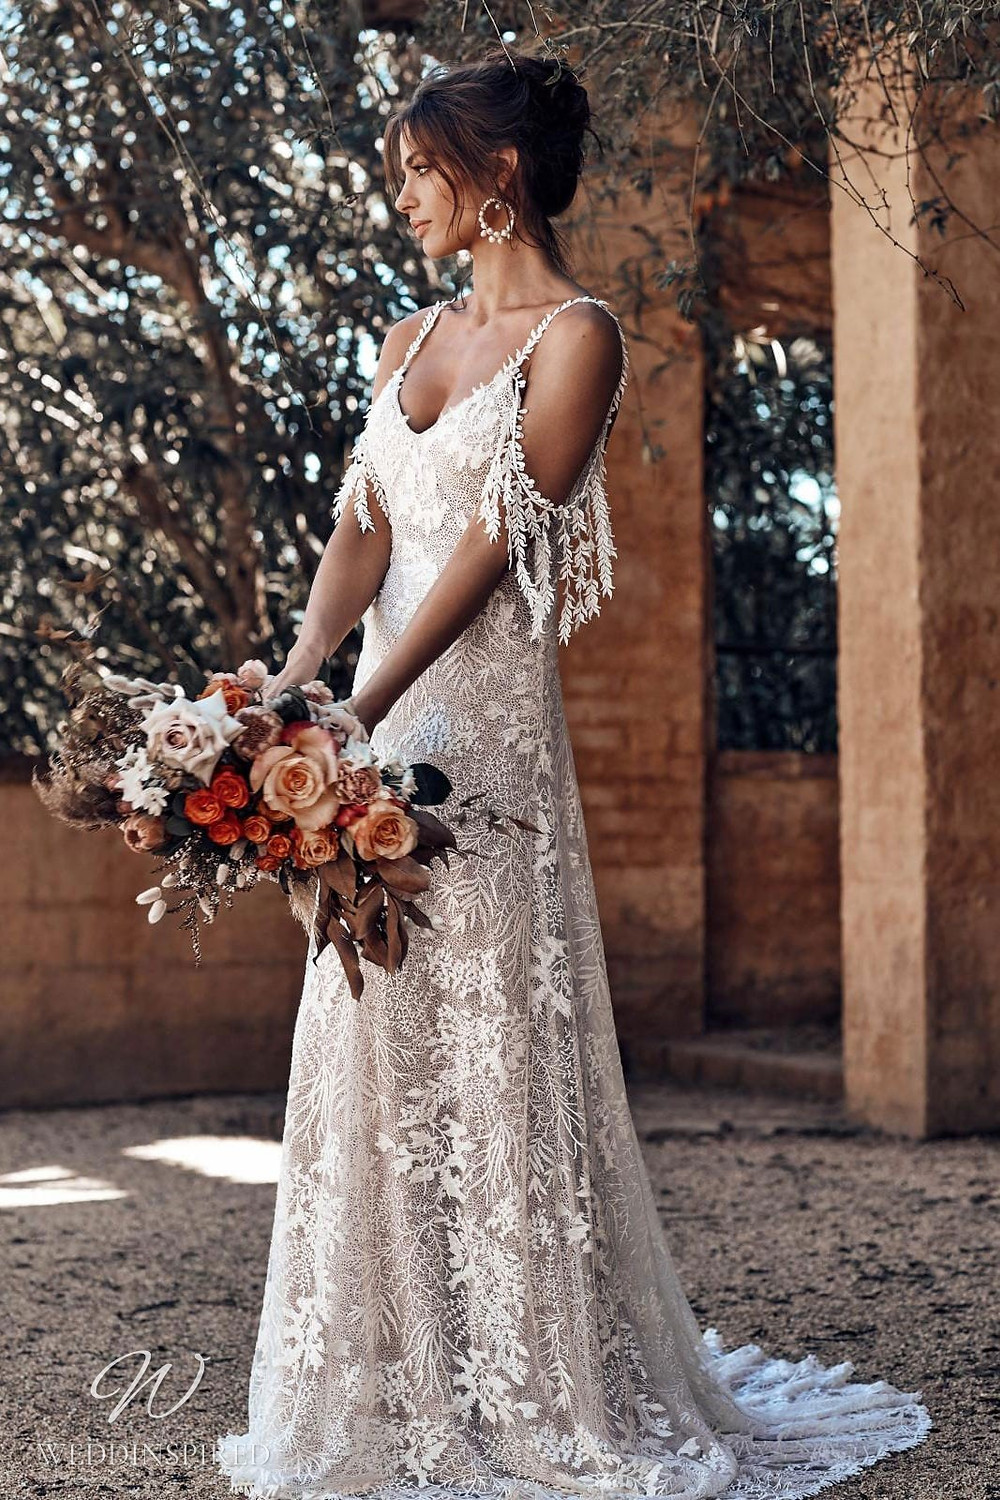 A Grace Loves Lace boho gypsy style off the shoulder lace A-line wedding dress with lace, thin spaghetti straps and leaf detail